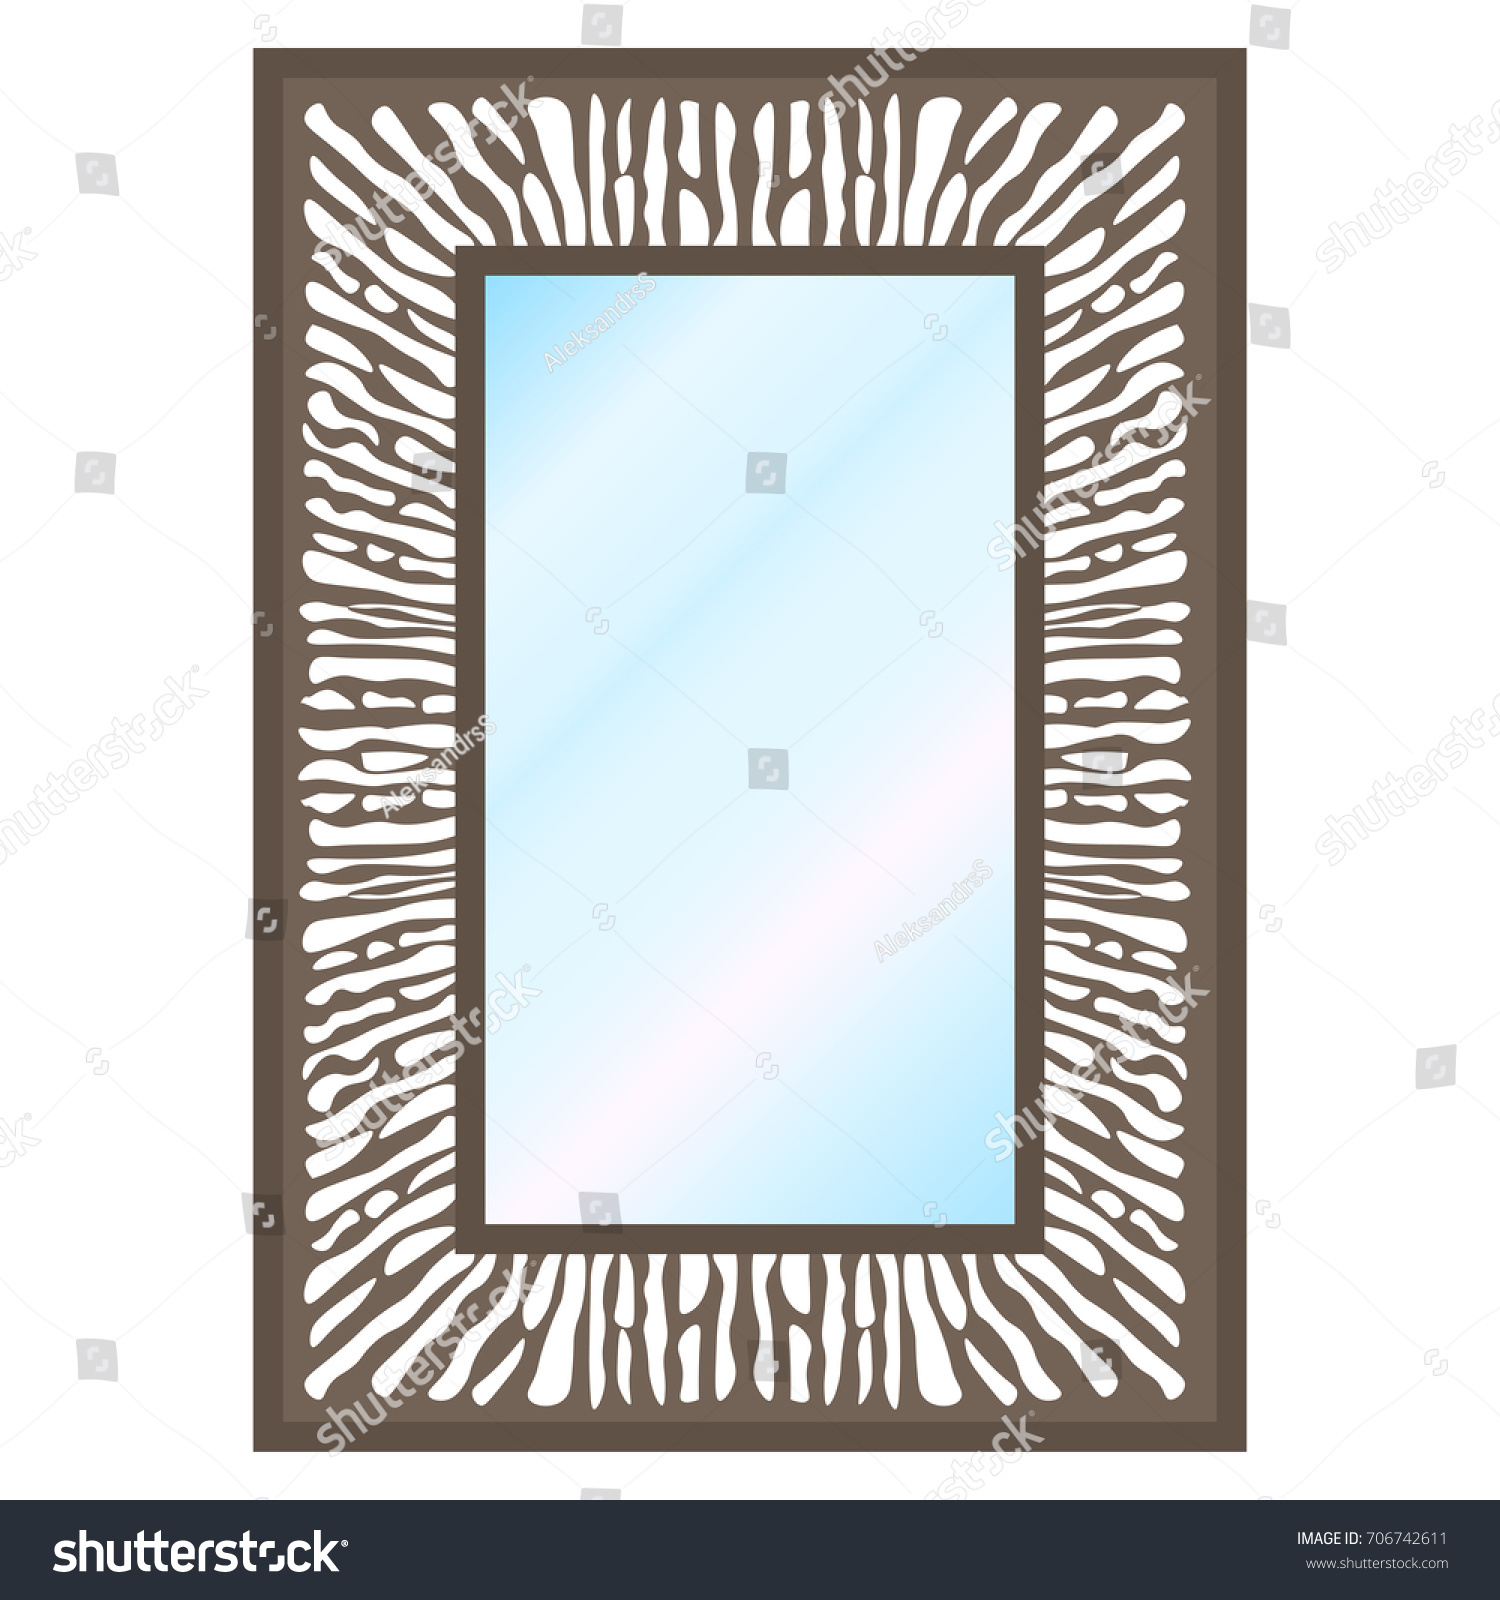 Vector illustration wall square mirror on stock vector 706742611 vector illustration of a wall square mirror on a white background amipublicfo Gallery